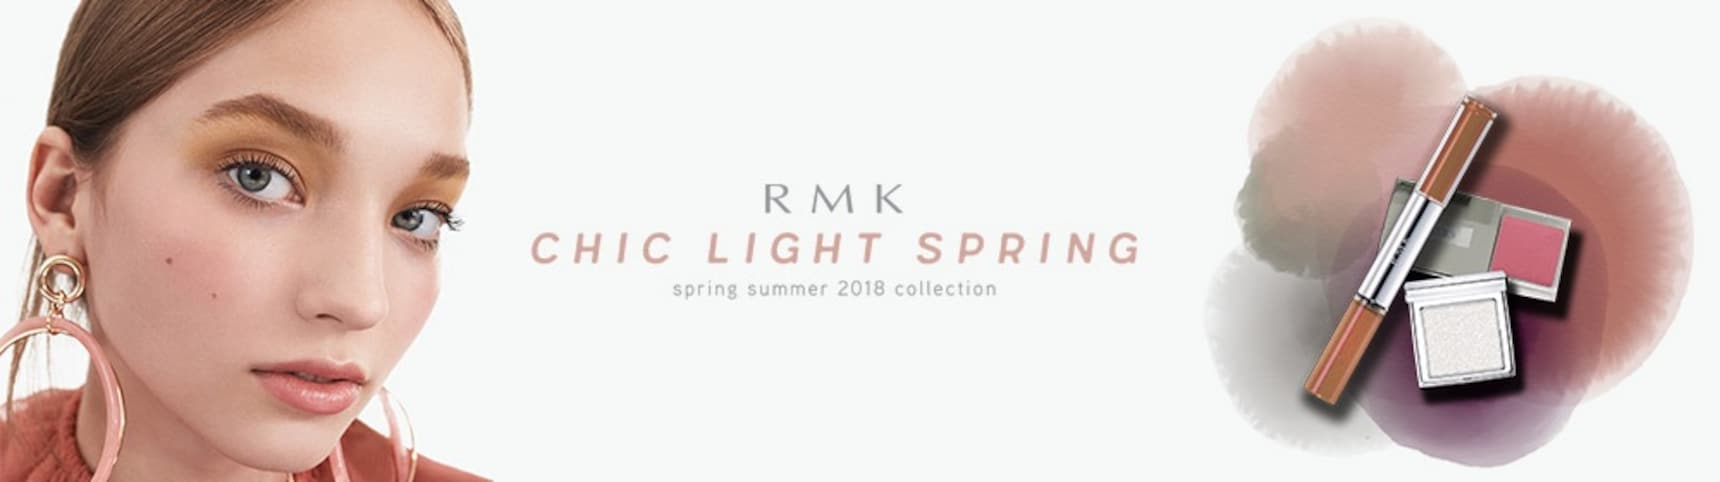 "RMK 2018 S/S 컬렉션 ""CHIC LIGHT SPRING"""